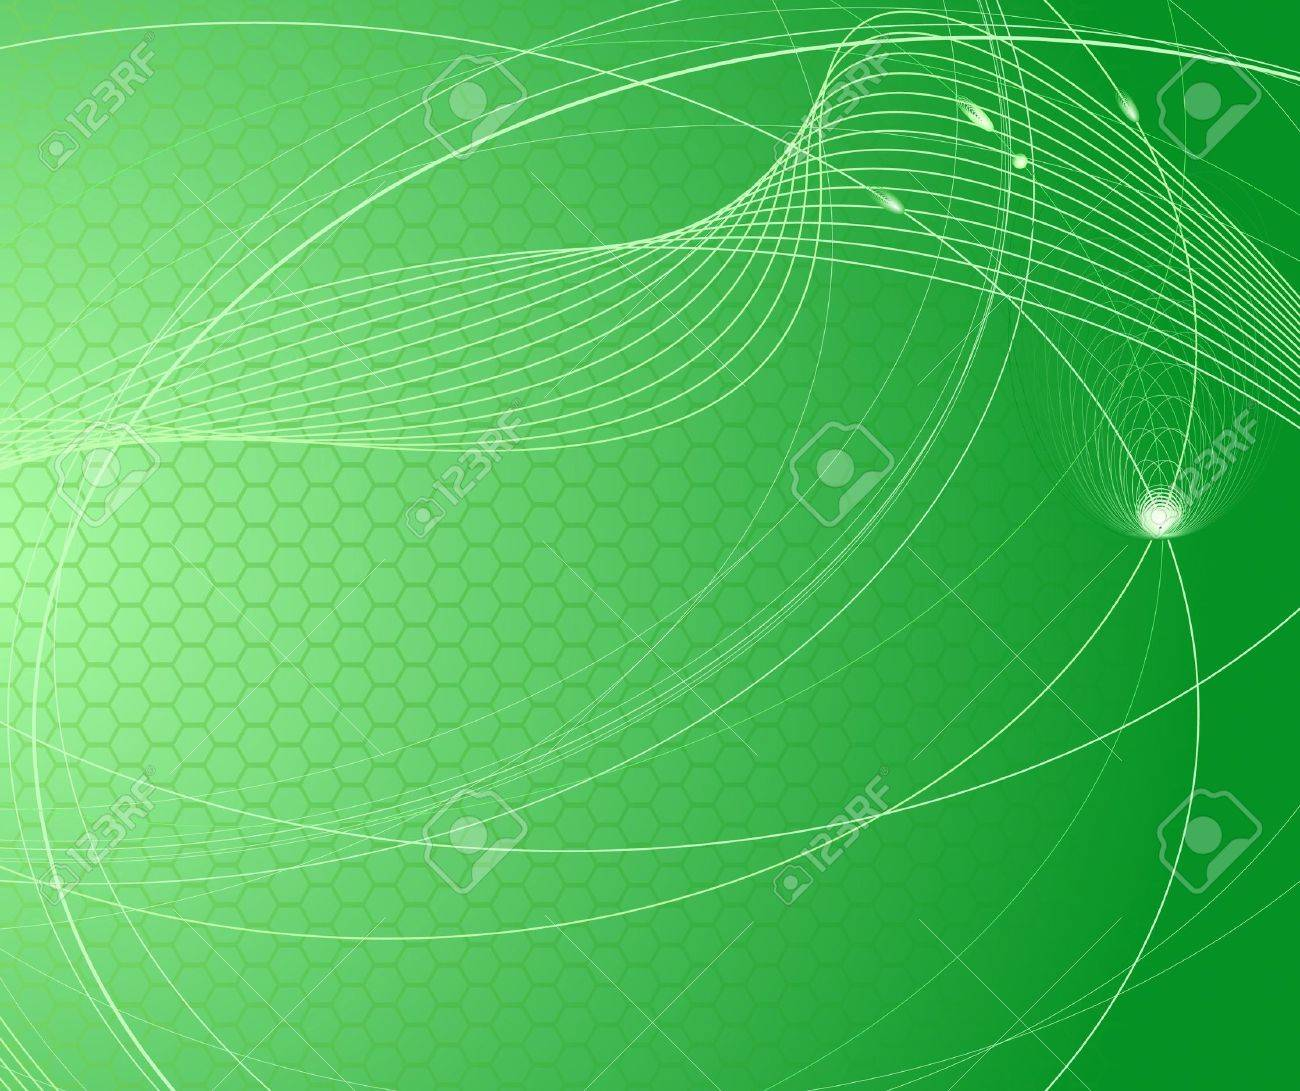 Technology and science abstract green background. illustration Stock Vector - 7019017